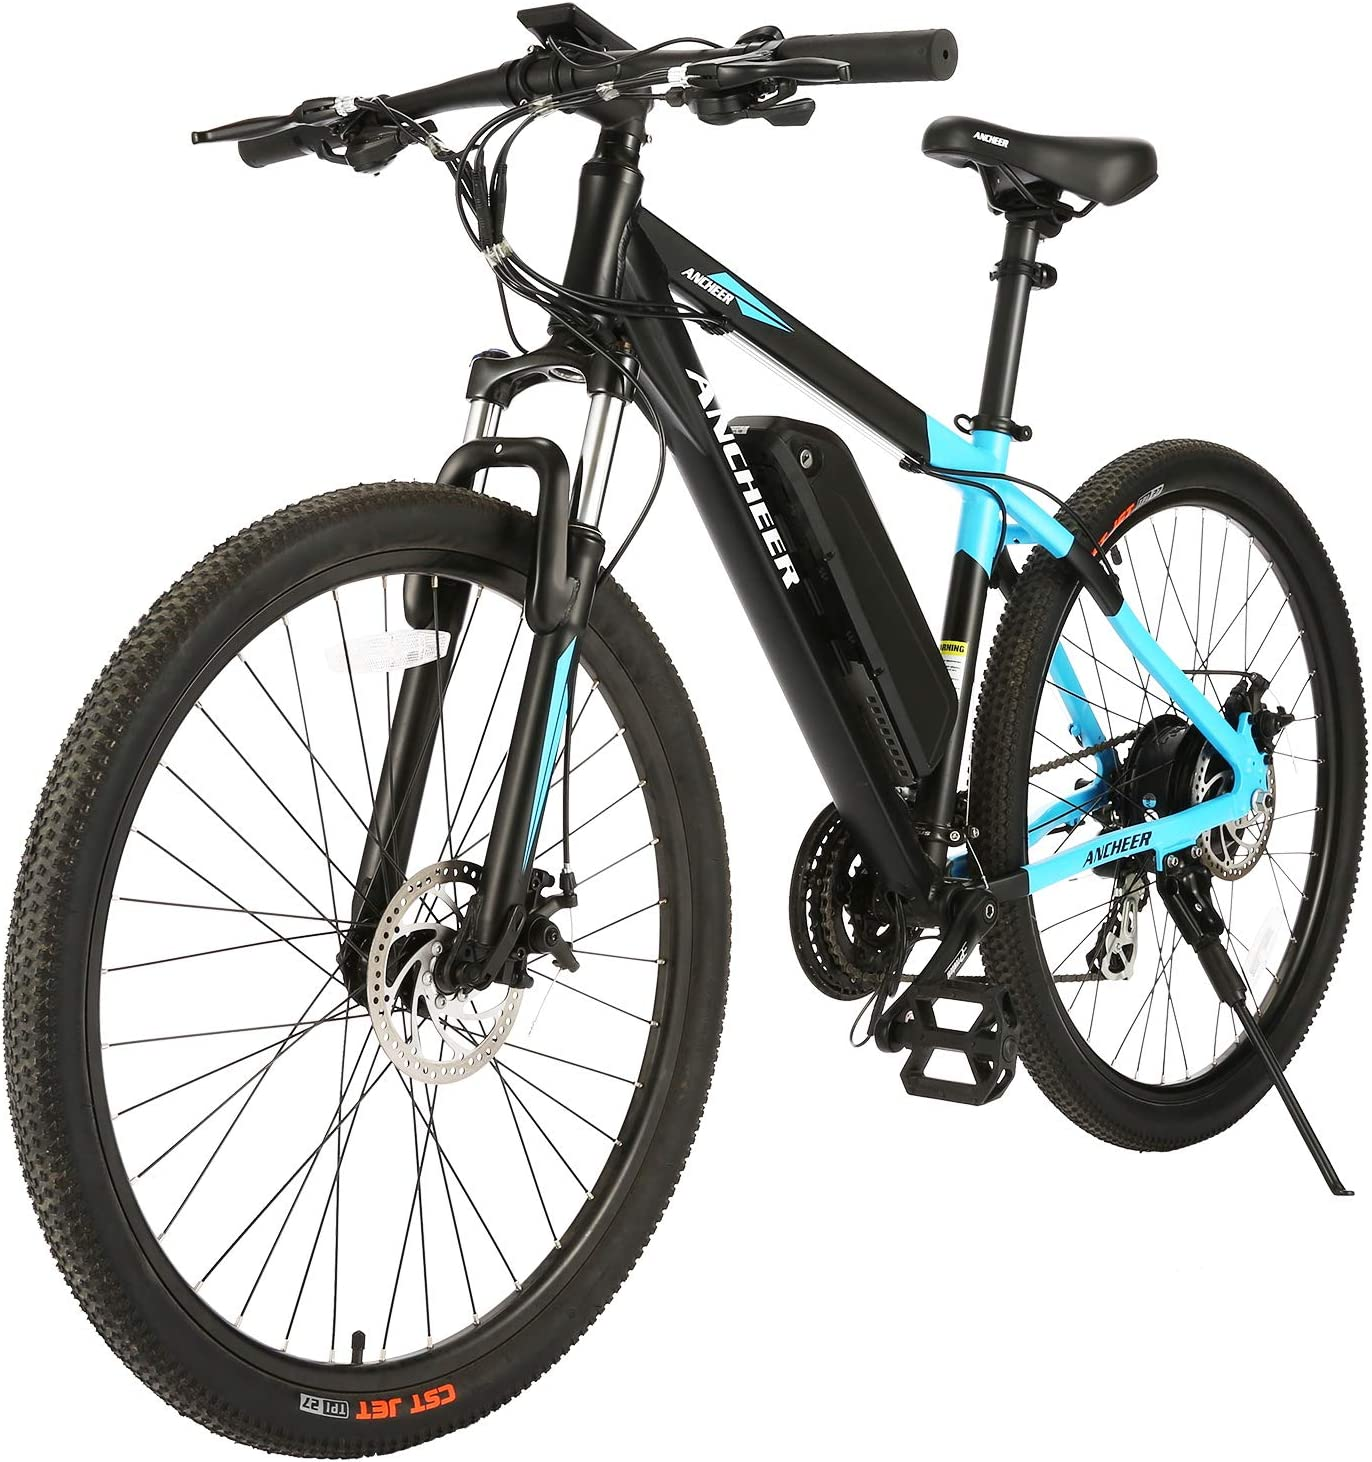 under $1,000 electric mountain bike